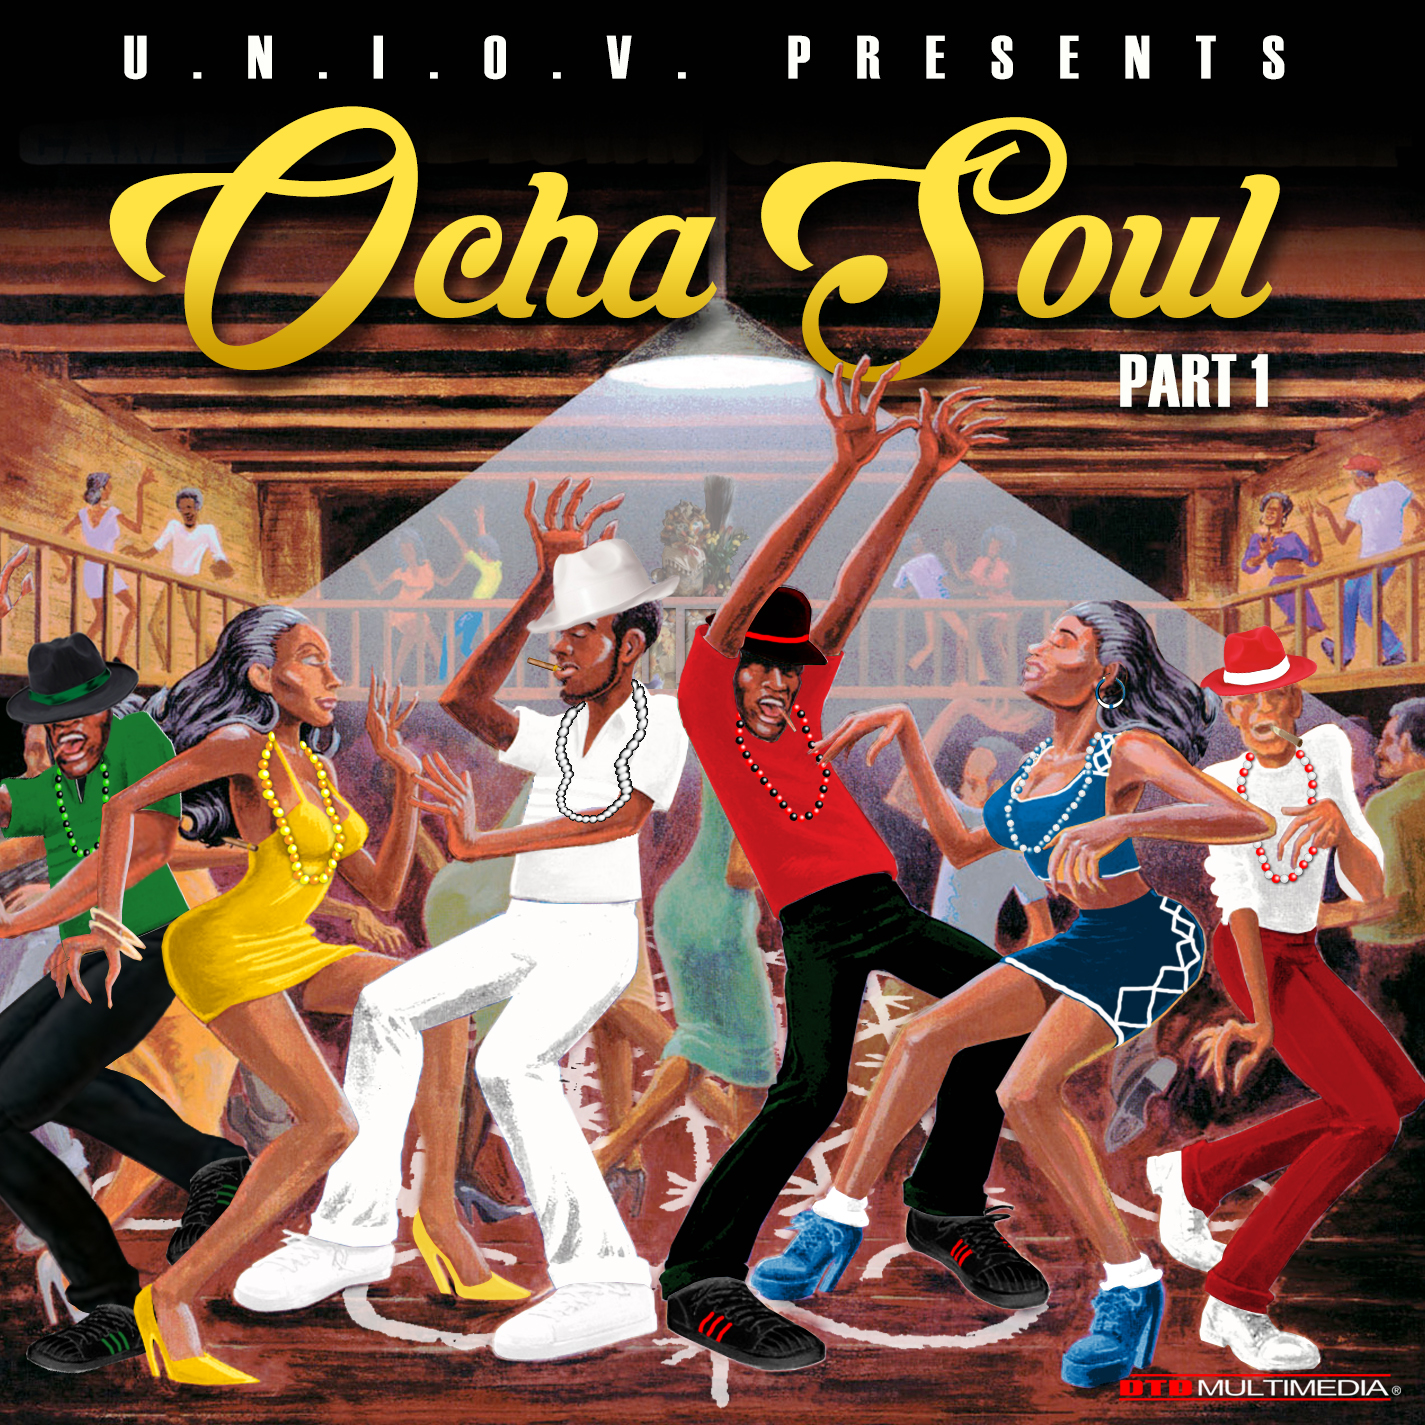 UNIOV Presents Ocha Soul Part 1 LP (2018)    Afro-Cuban Orisa music blended with deep soulful melodic chords and rhythmic percussion and vocals. This album is driven by the ancestral voyage through love, focus, and determination to the ultimate reality. We call it Orisa Our Way.    Produced by DJ Oba for Ifa Music Group LLC. Vocals & Vocal Arrangement by Oba and Olori    Album artwork by DTD Multimedia     AVAILABLE NOW on      CD Baby     , iTunes, Spotify,      Tidal      & more.